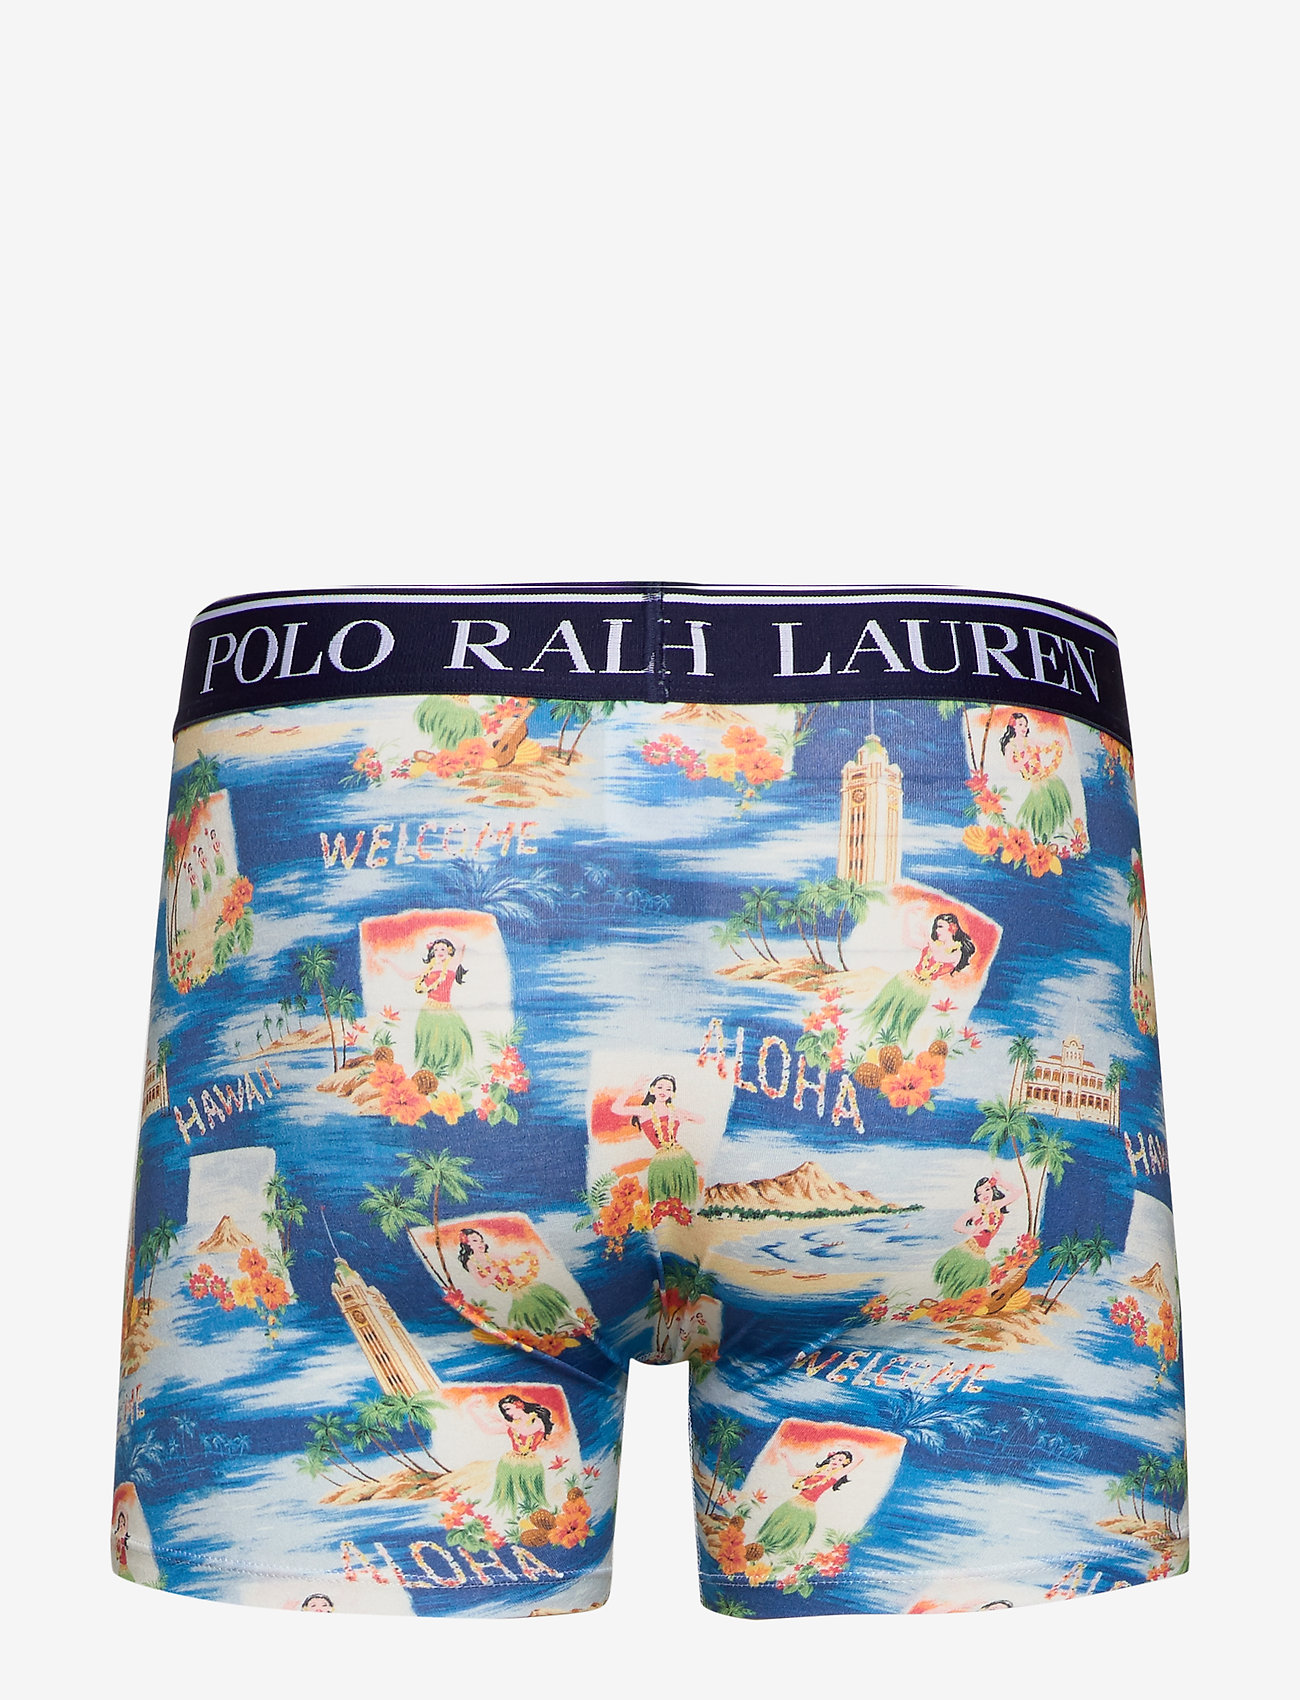 Polo Ralph Lauren Underwear Stretch Cotton Boxer Brief - Boxershorts Aloha Print